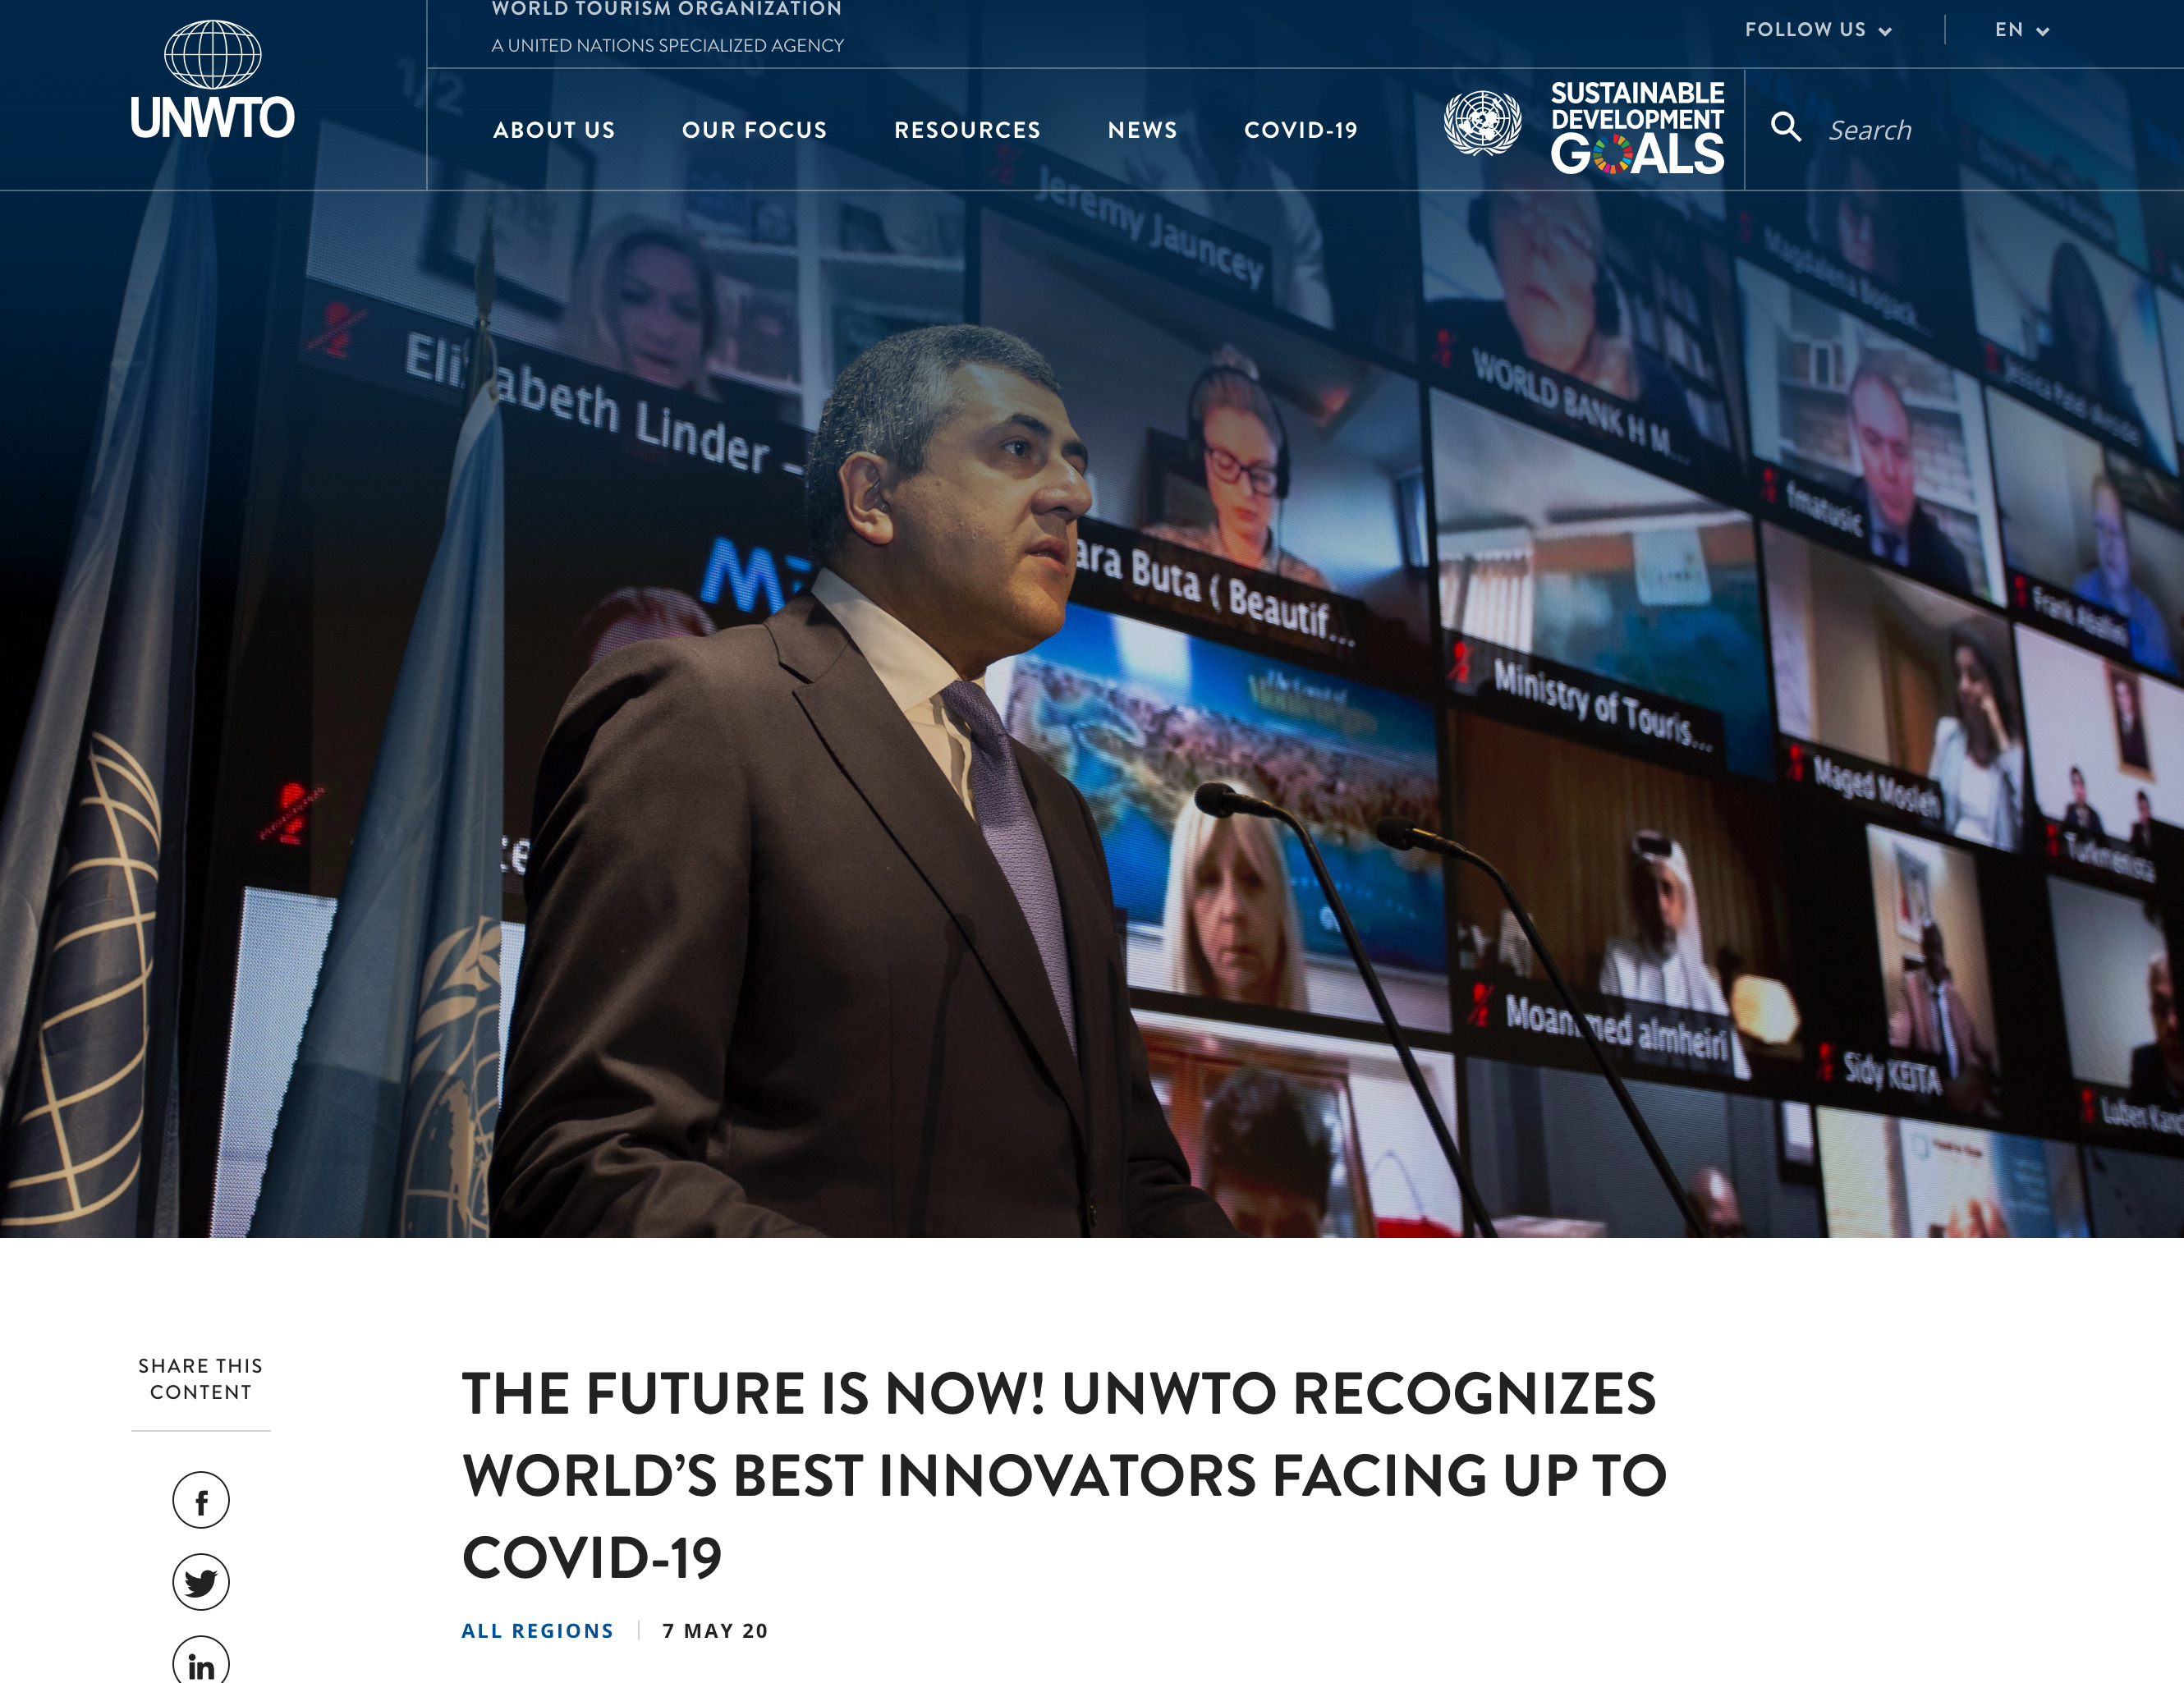 The Future Is Now! UNWTO Recognizes World's Best Innovators Facing Up To COVID-19